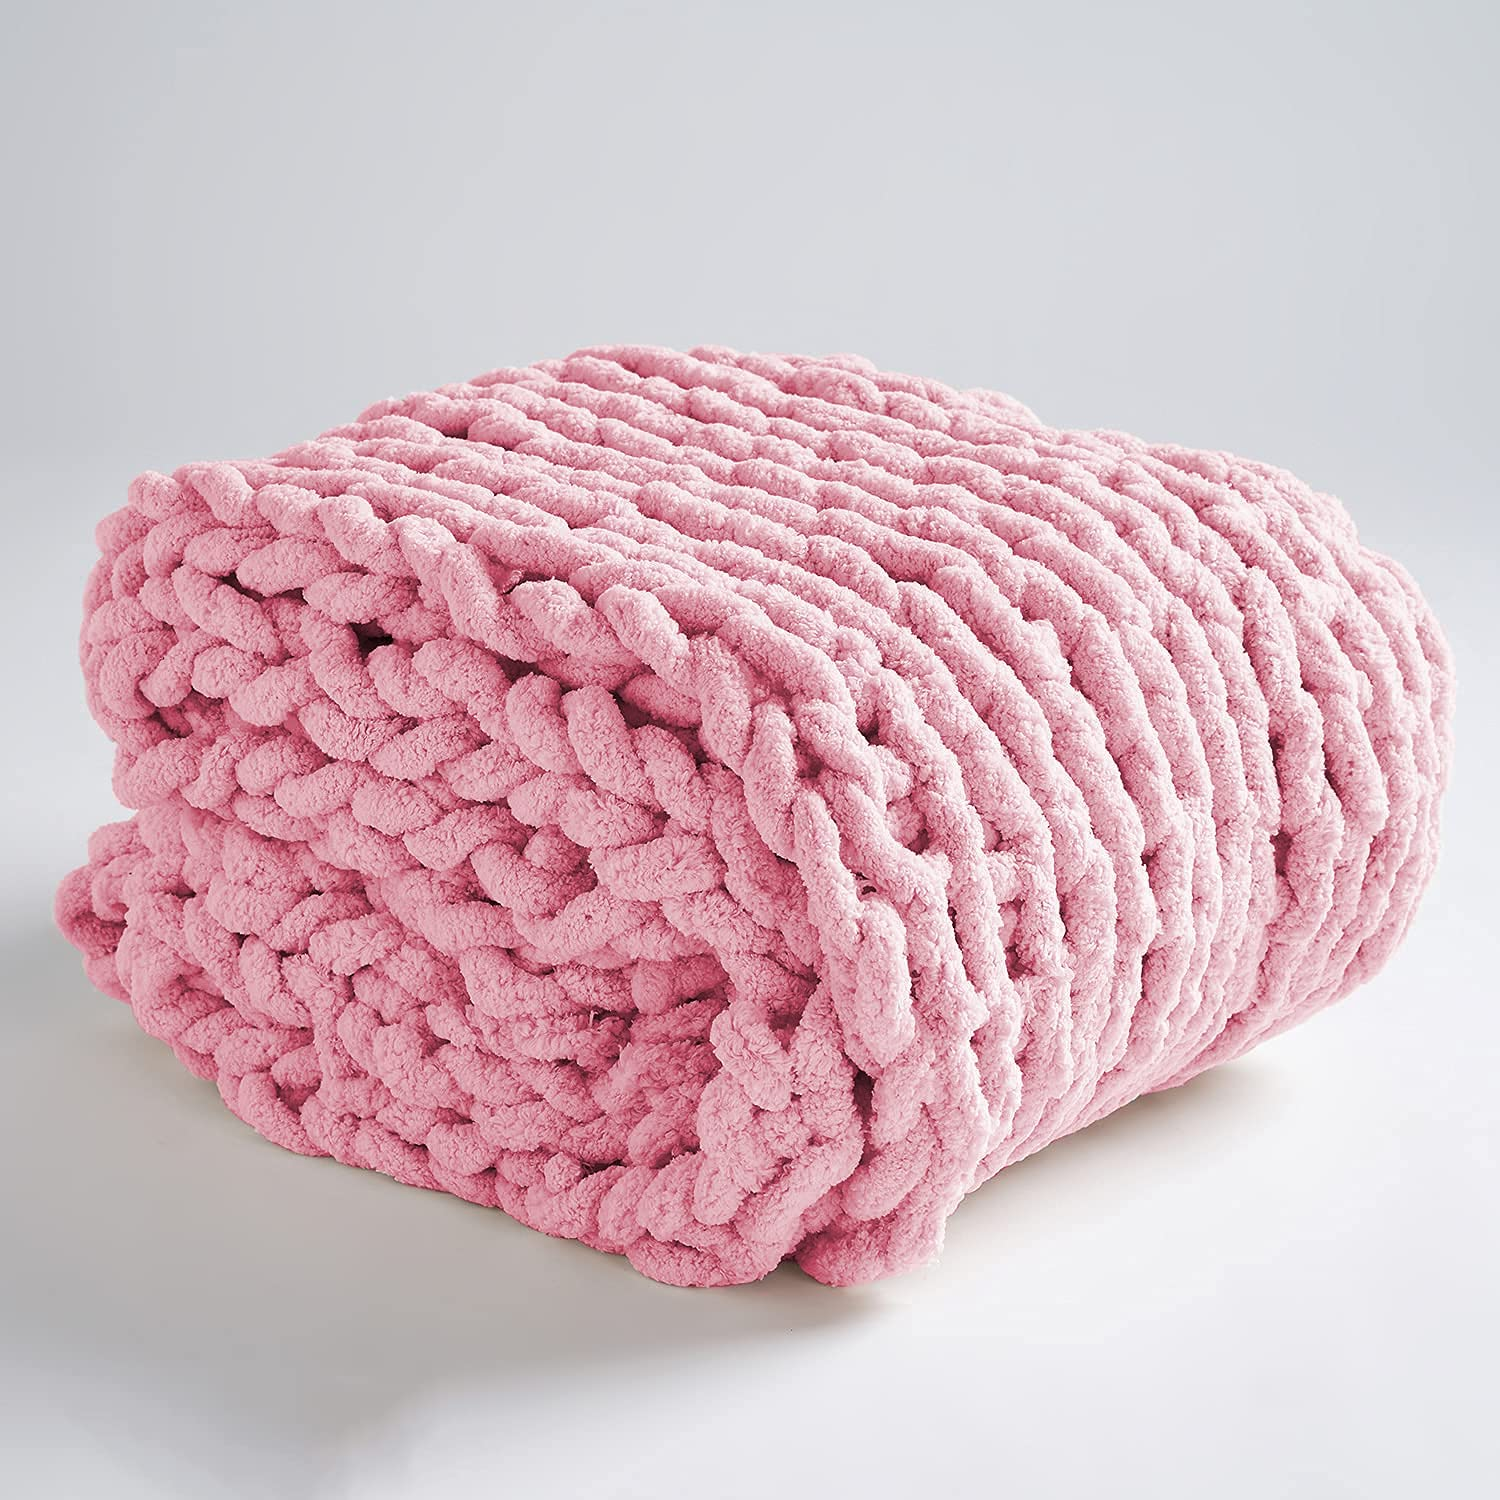 PENKERMAR Chunky Sale Special Price Knit Blanket Chenille Throw Cheni Handmade All stores are sold Soft